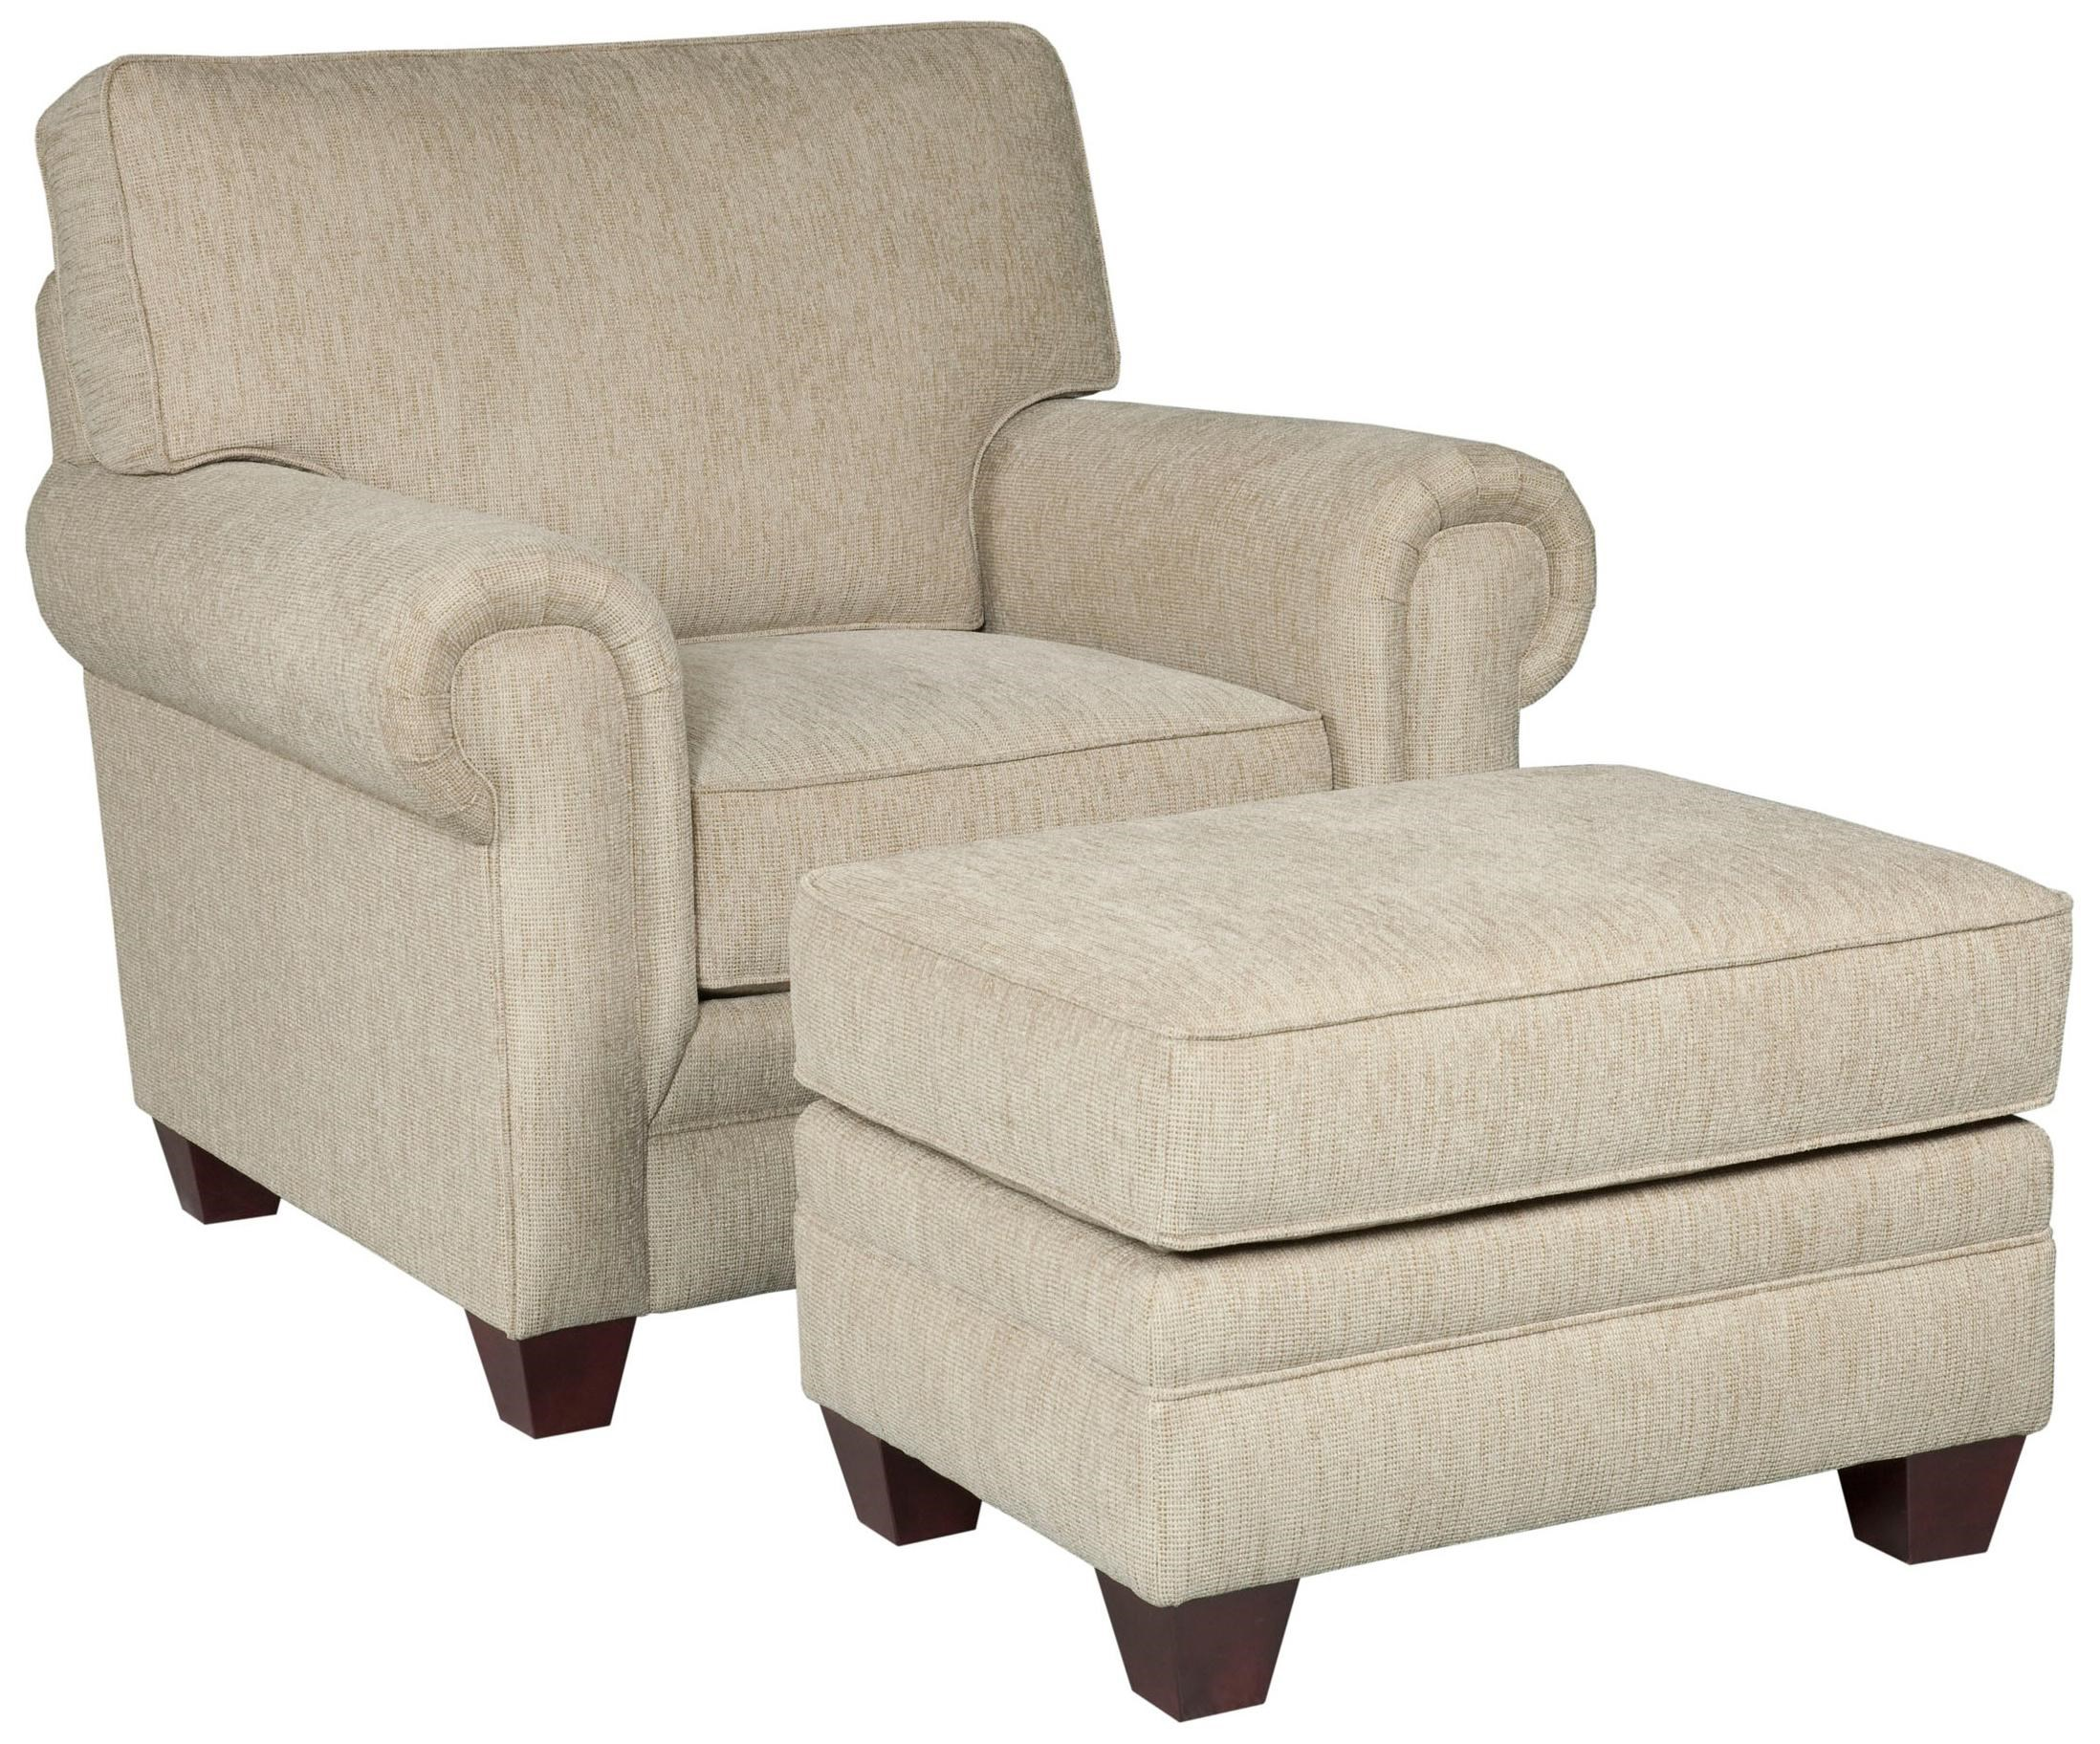 Broyhill Furniture MonicaChair and Ottoman ...  sc 1 st  Hudsonu0027s Furniture & Broyhill Furniture Monica Transitional Upholstered Chair and ...